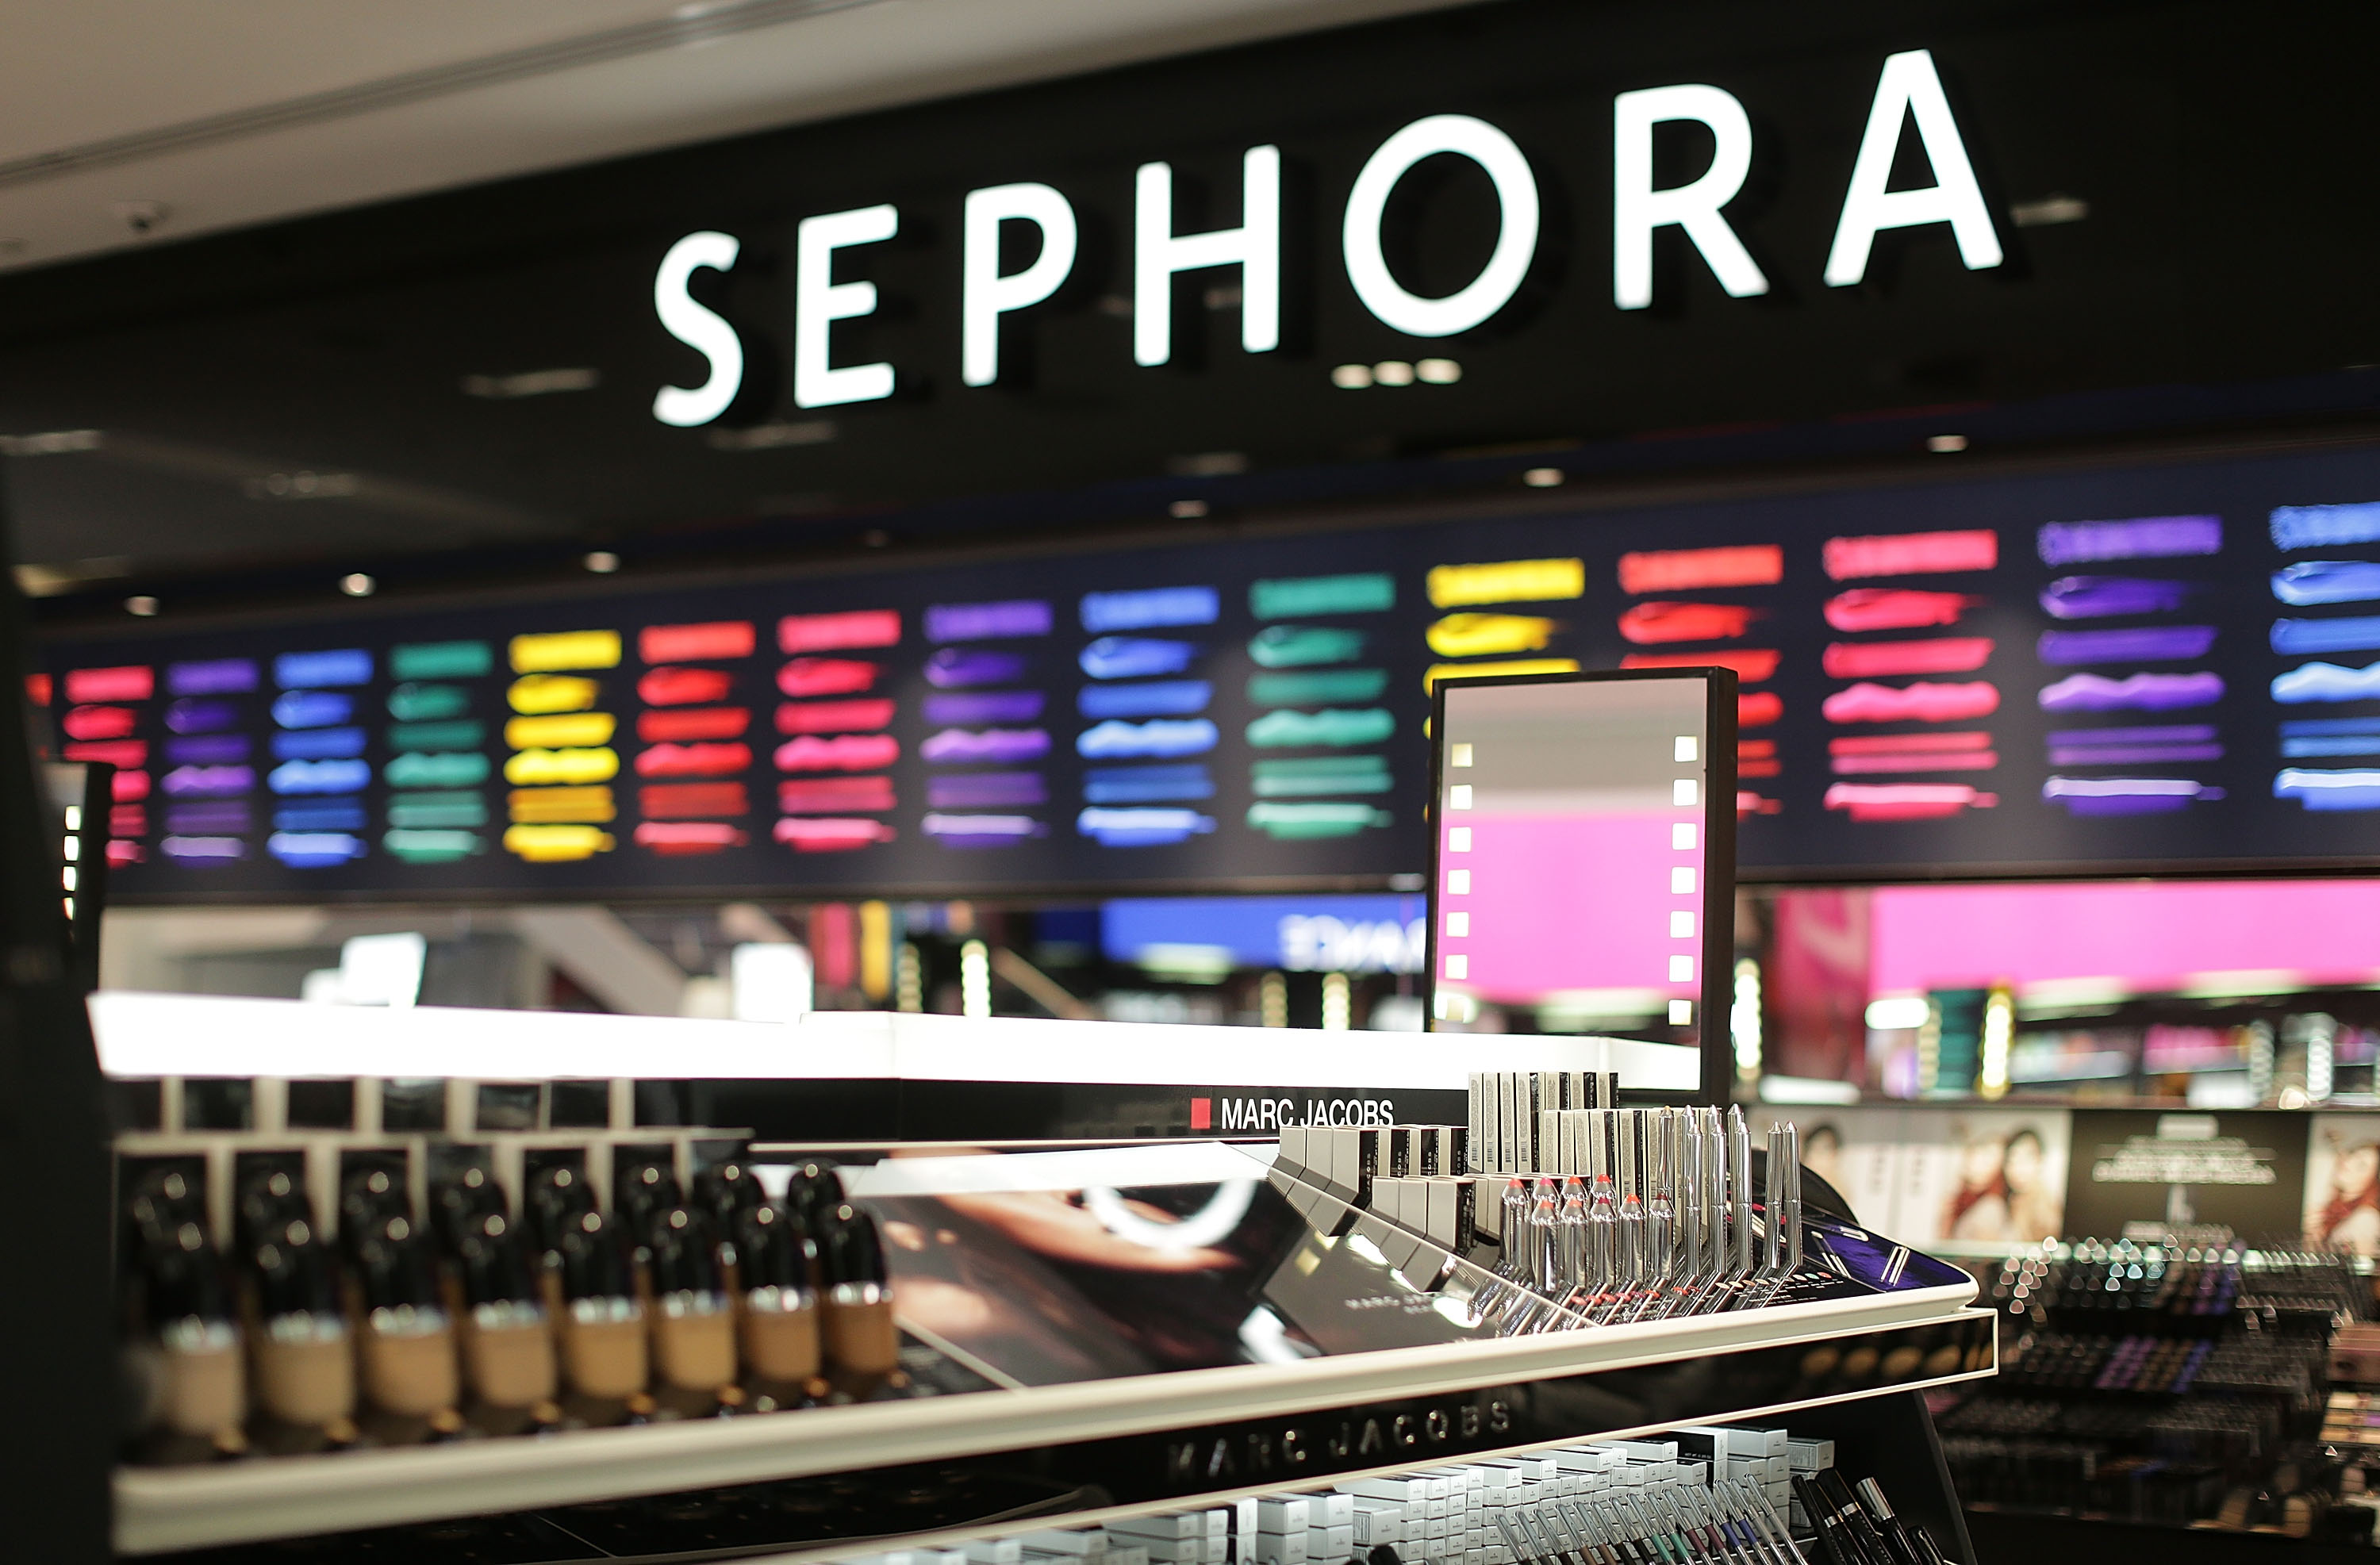 SYDNEY, AUSTRALIA - DECEMBER 05:  A general view inside the Sephora store before it opens the doors to its Westfield Pitt Street Mall store on December 5, 2014 in Sydney, Australia. This is the first Sephora store to open in Australia.  (Photo by Mark Metcalfe/Getty Images)